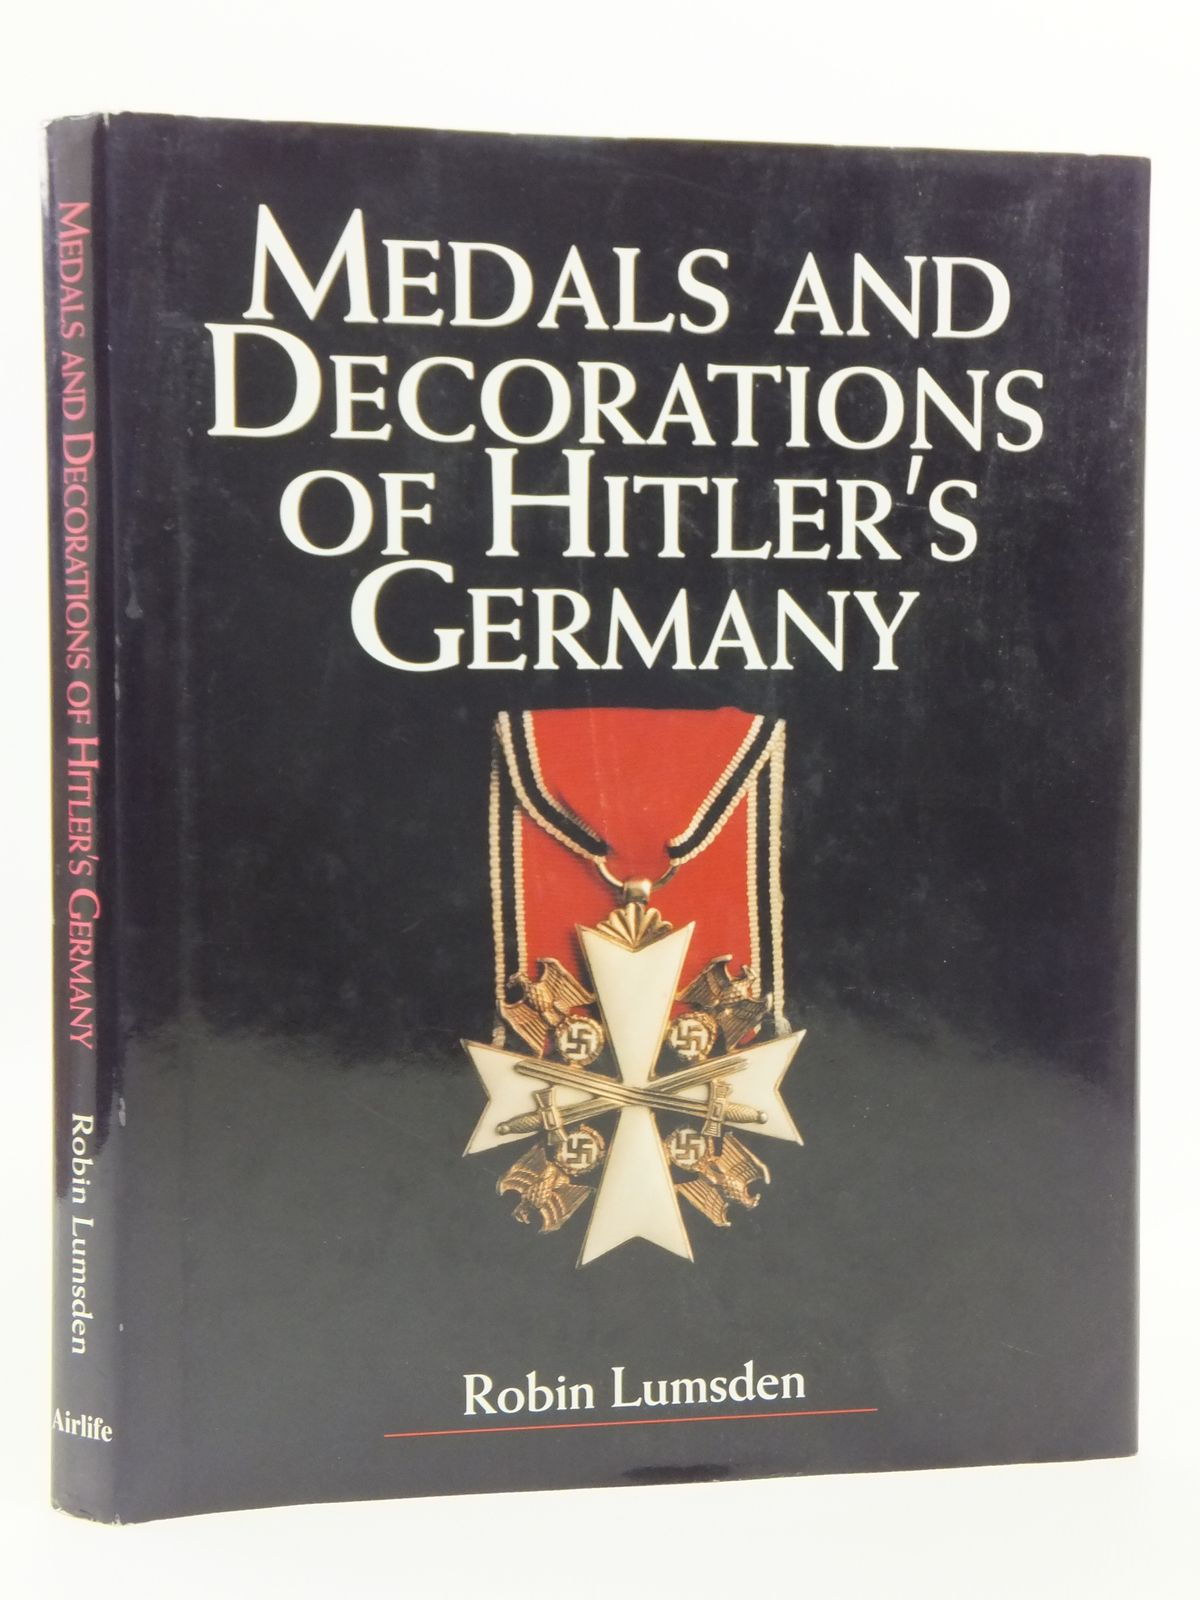 Photo of MEDALS AND DECORATIONS OF HITLER'S GERMANY written by Lumsden, Robin published by Airlife (STOCK CODE: 1607933)  for sale by Stella & Rose's Books